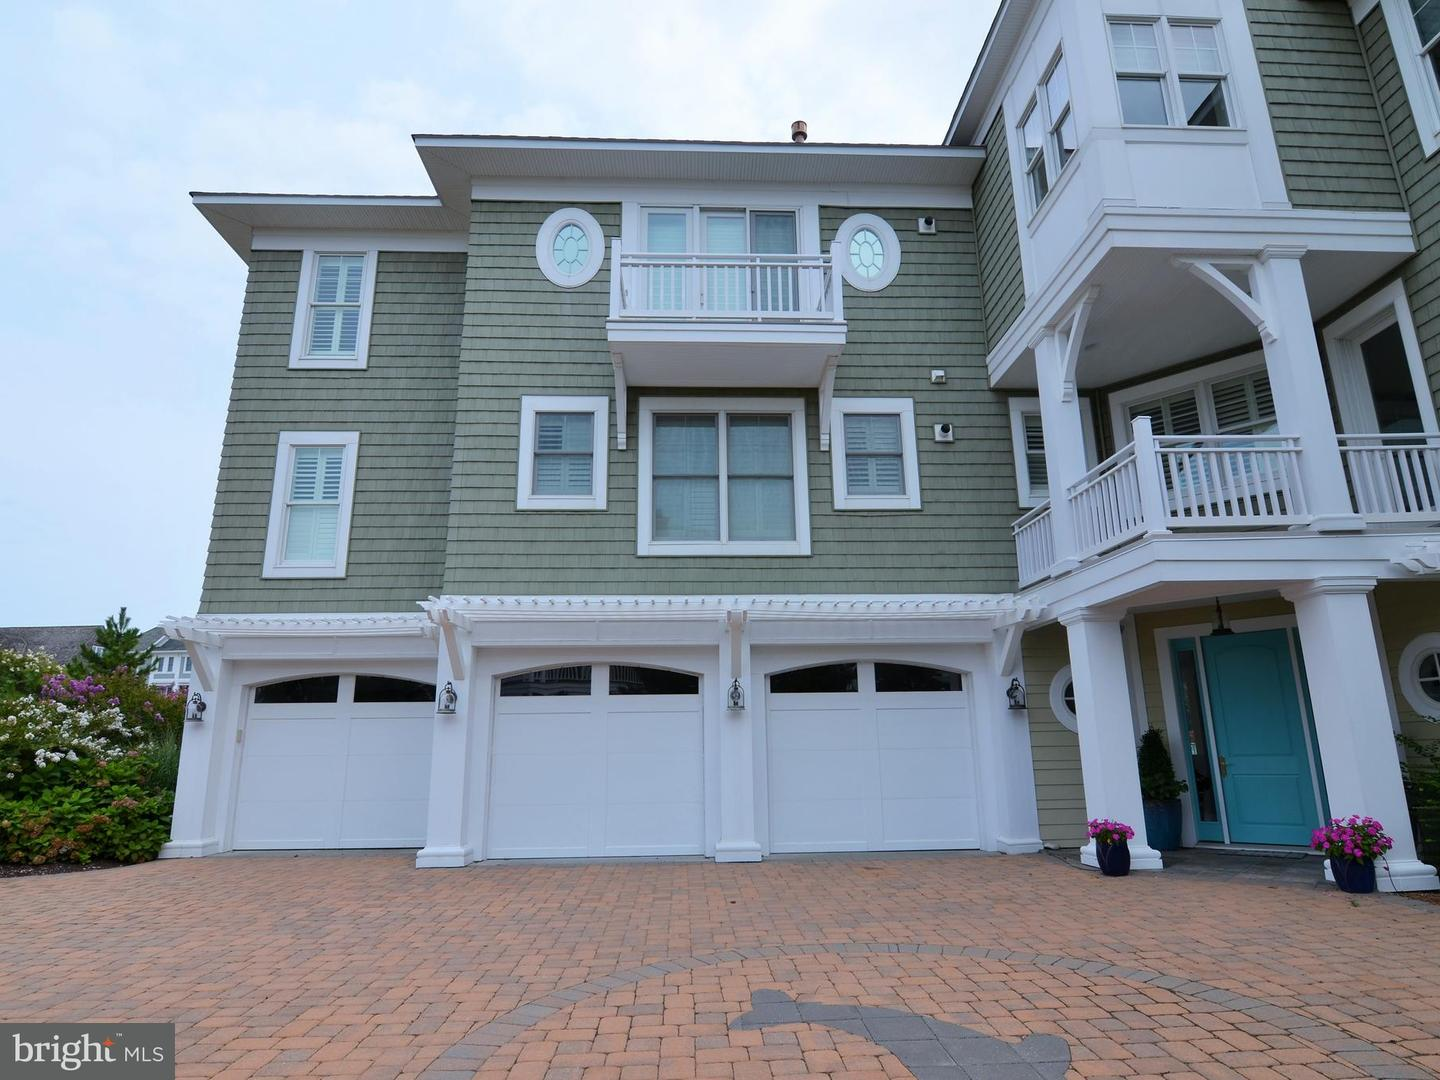 1002293530-300500805800-2018-09-25-15-08-24 31 Hall Ave | Rehoboth Beach, DE Real Estate For Sale | MLS# 1002293530  - 1st Choice Properties